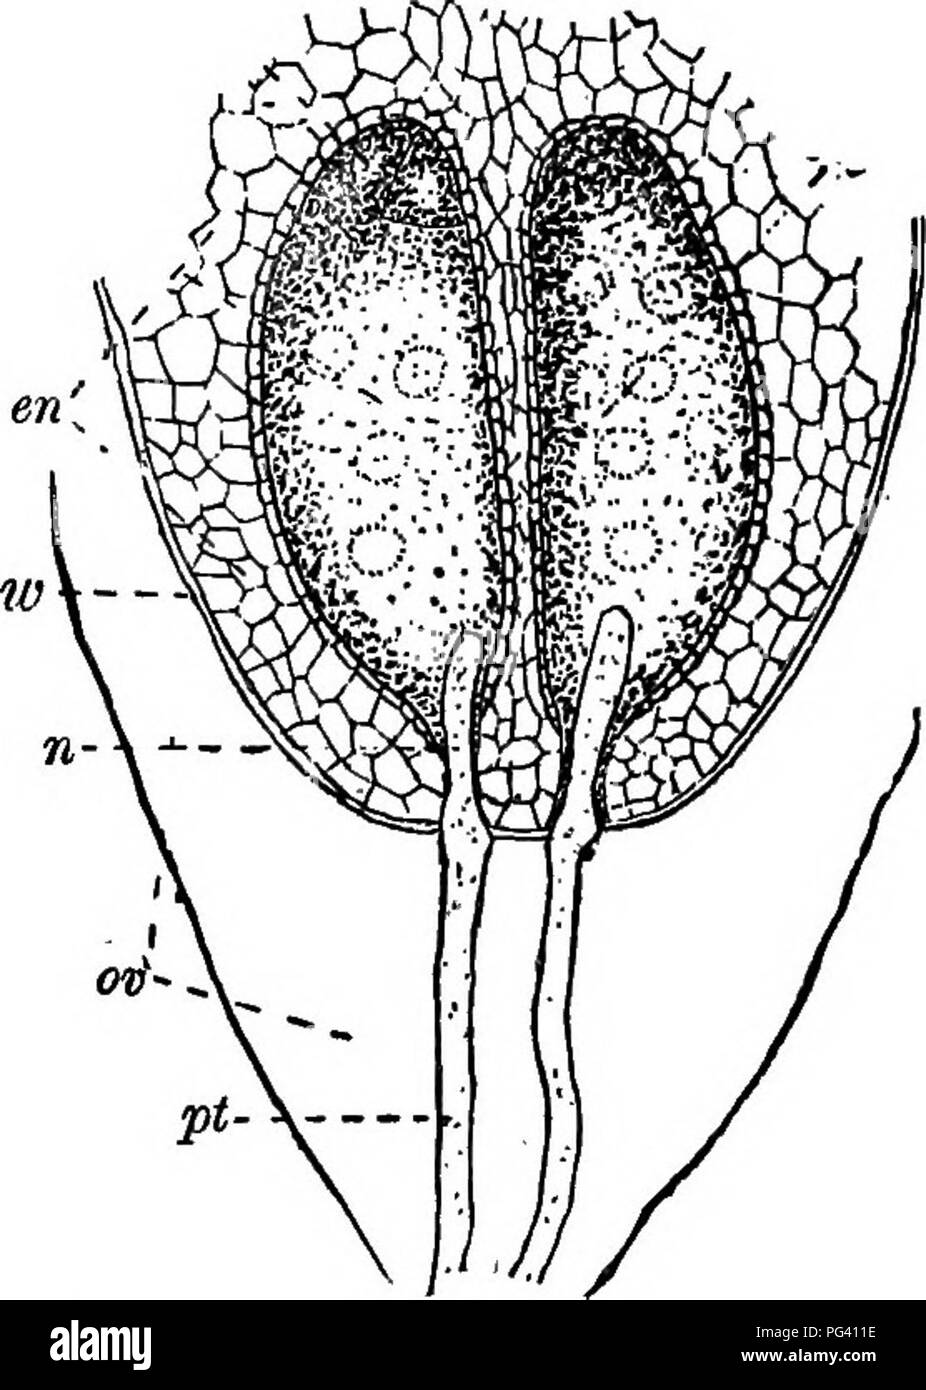 . The essentials of botany. Botany. 218 BOTANY. 463. The ovule-bearing flowers consist of the well-known cones which, when mature, bear the seeds (Fig. 122). The cone consists of a stem bearing many leaf-like scales closely crowded together, and upon these the ovules are produced. Each ovule has one coat which grows up from below, almost covering it; but as the ovules grow they bend. Fia 123.—Part of a Pine-ovule, cm, the body of the ovule; to, embryo-sac filled ipith endosperm, en, which contains two large cells (rudimentary archegones): re, neck of archegone; pi, pollen-tubes growing upward  Stock Photo